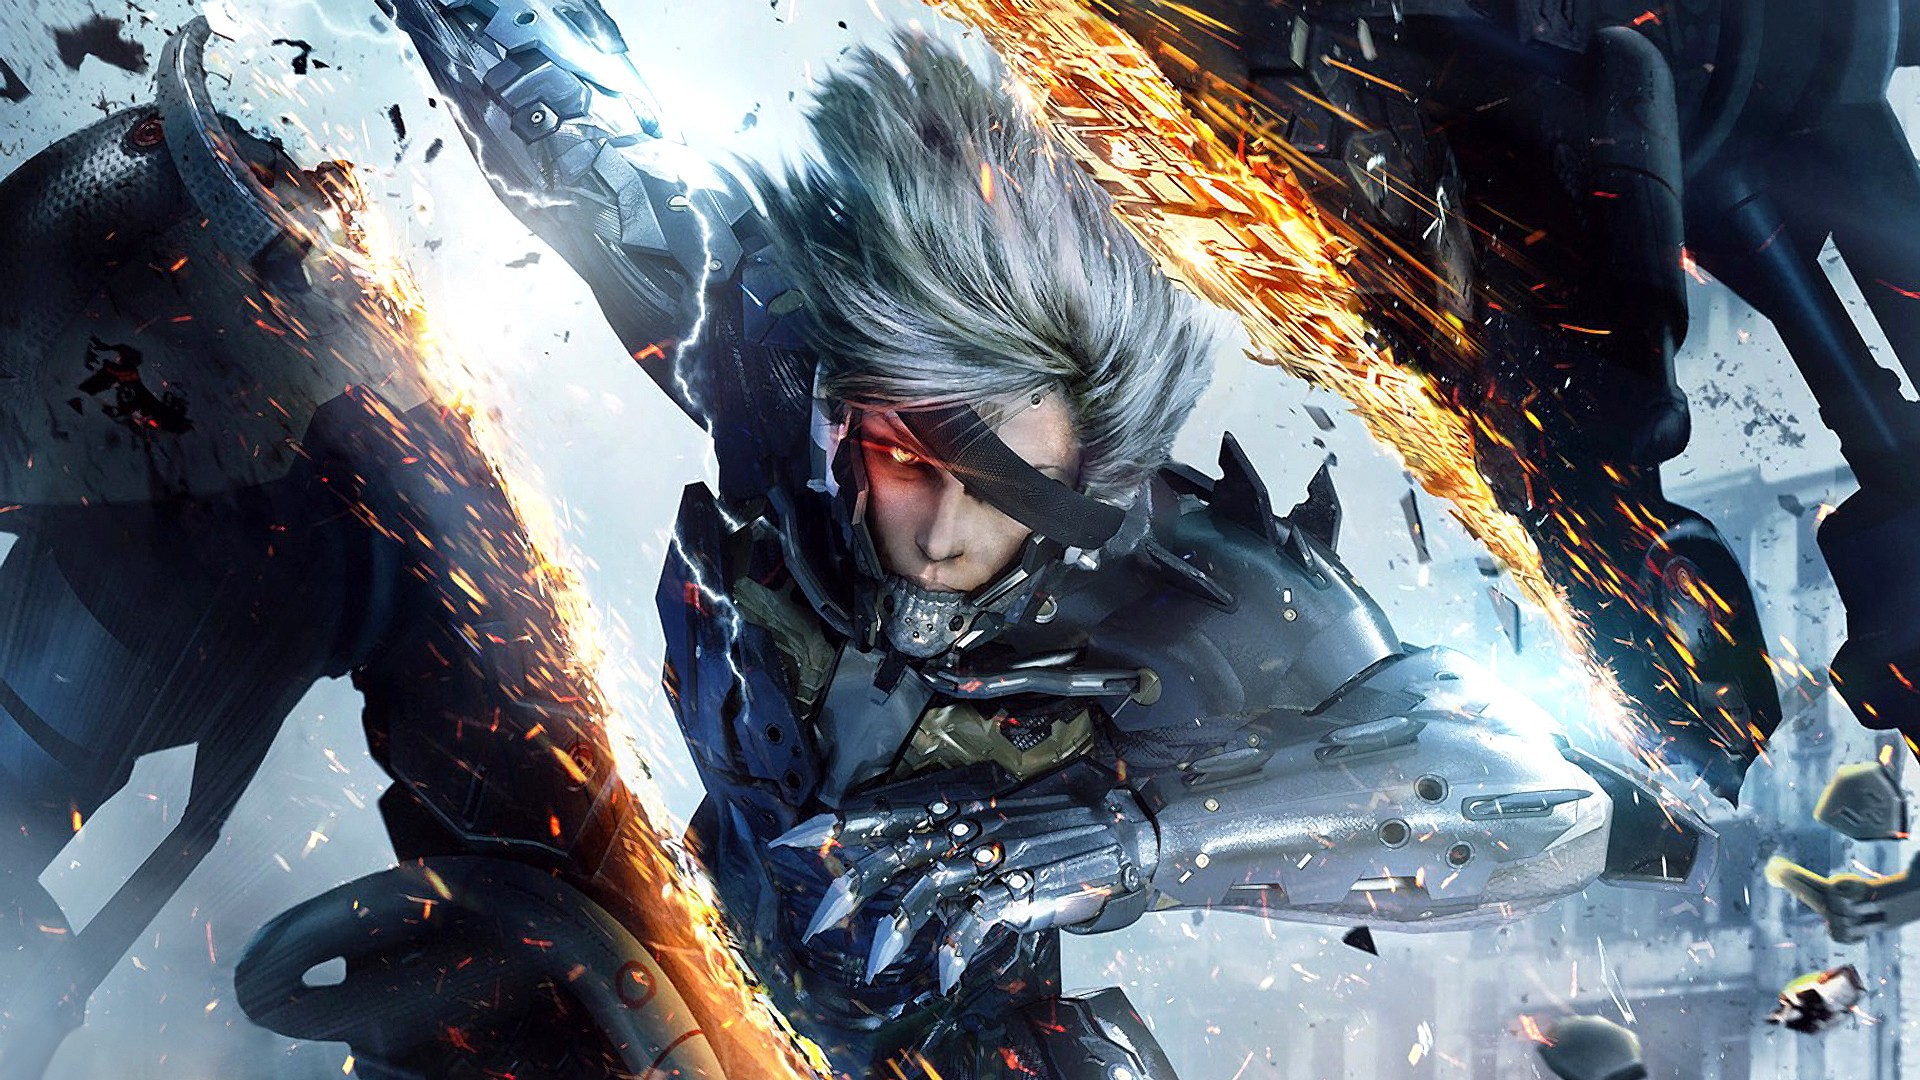 Metal Gear Rising Wallpapers